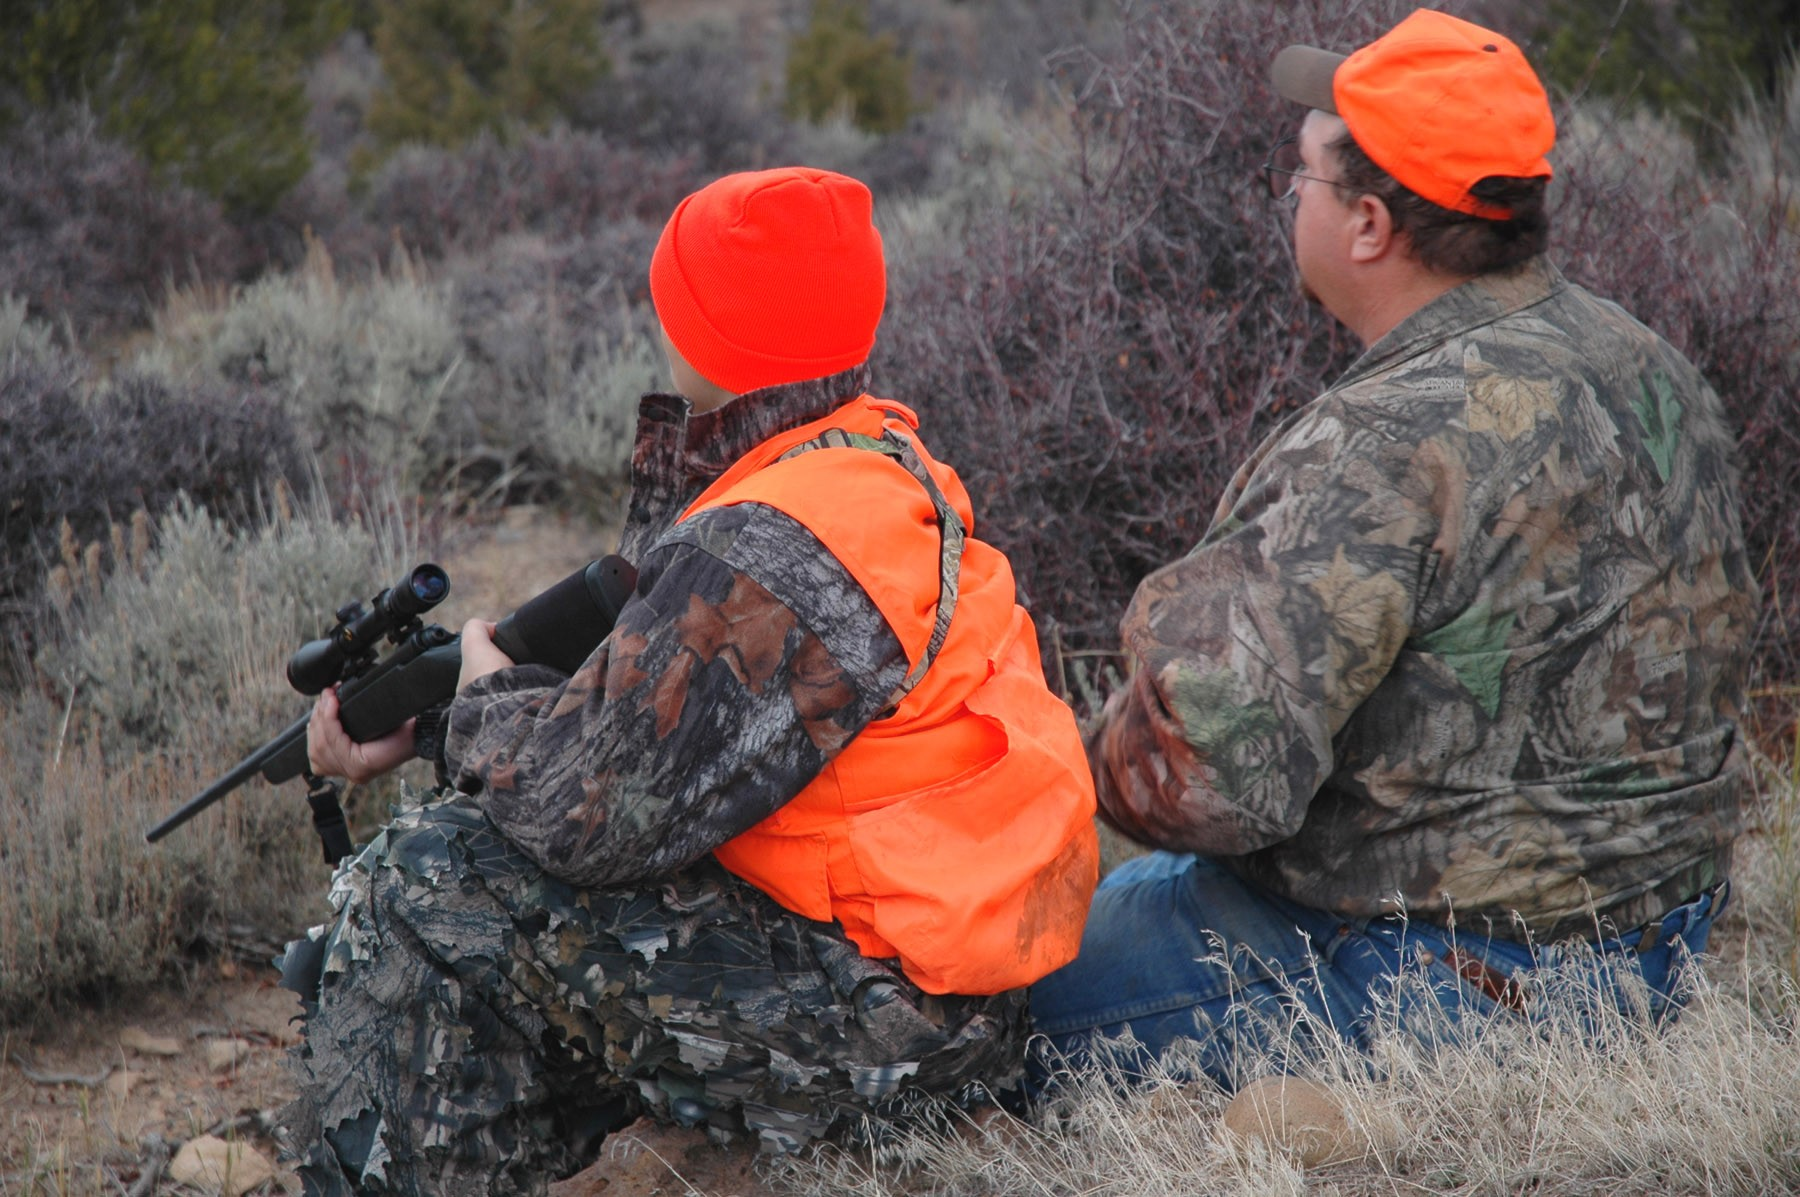 Two hunters sitting on the side of a hill wearing camouflage and hunter orange.